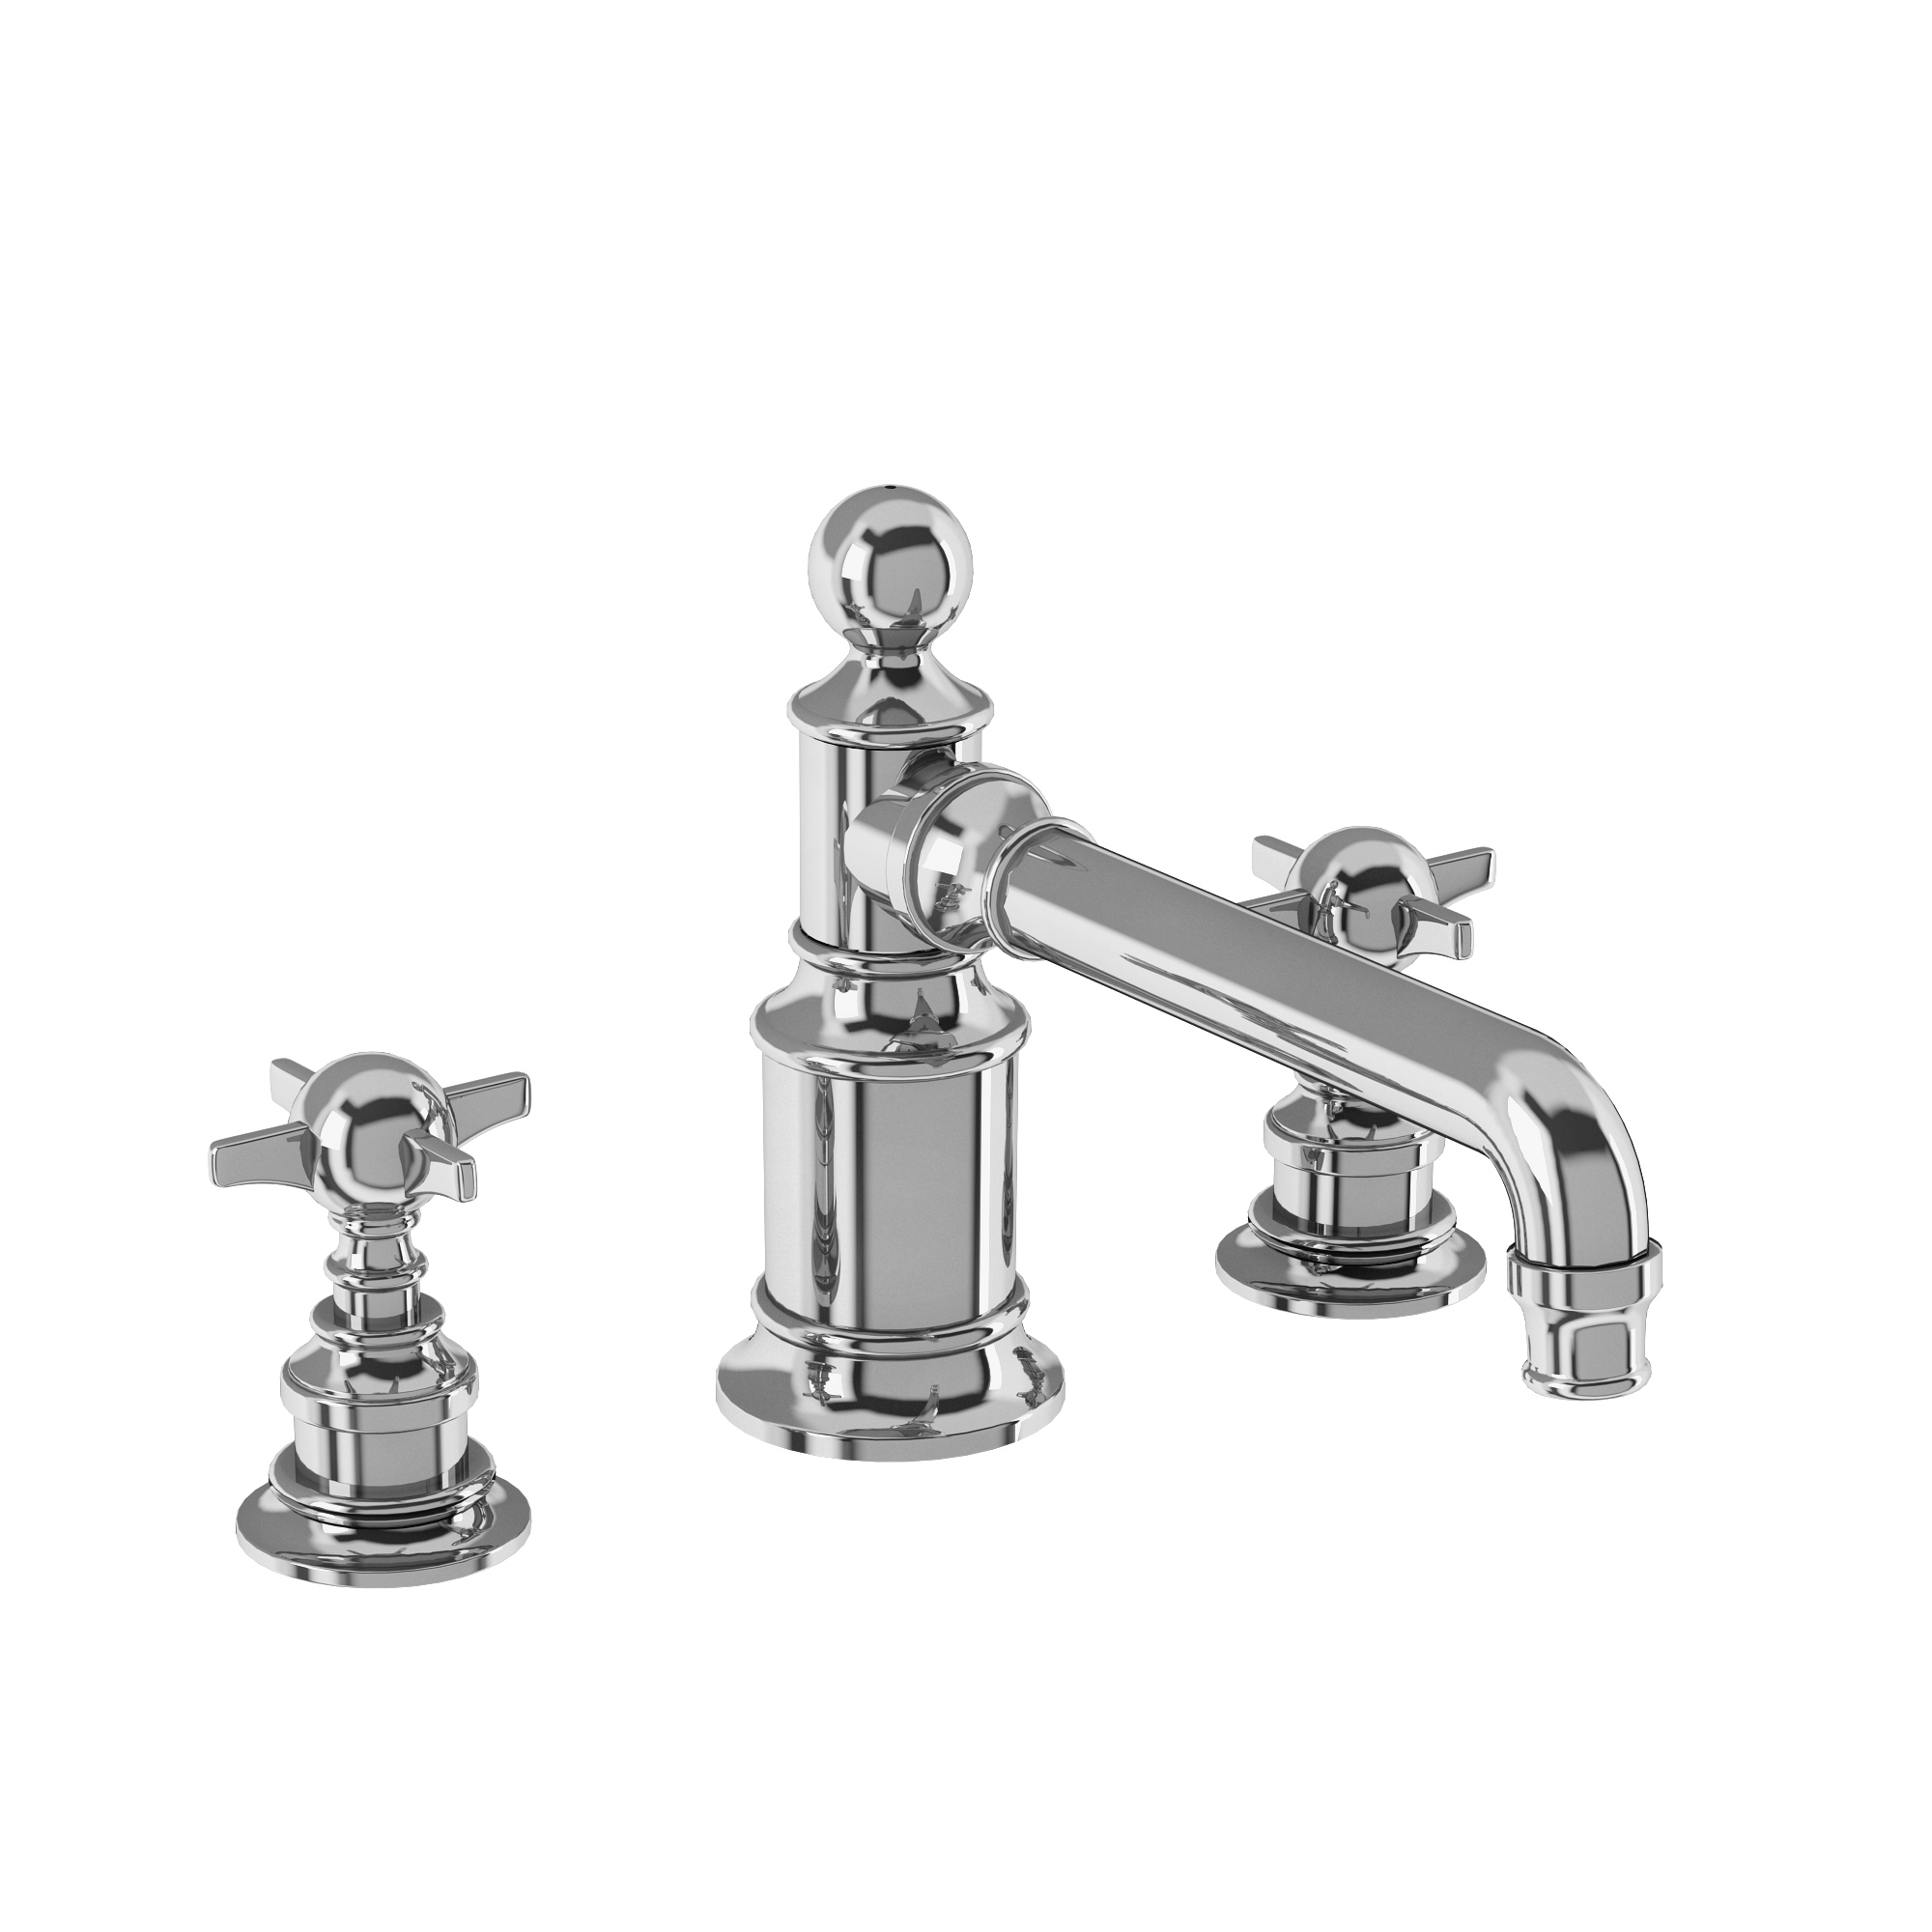 Arcade three hole basin mixer deck-mounted without pop up waste